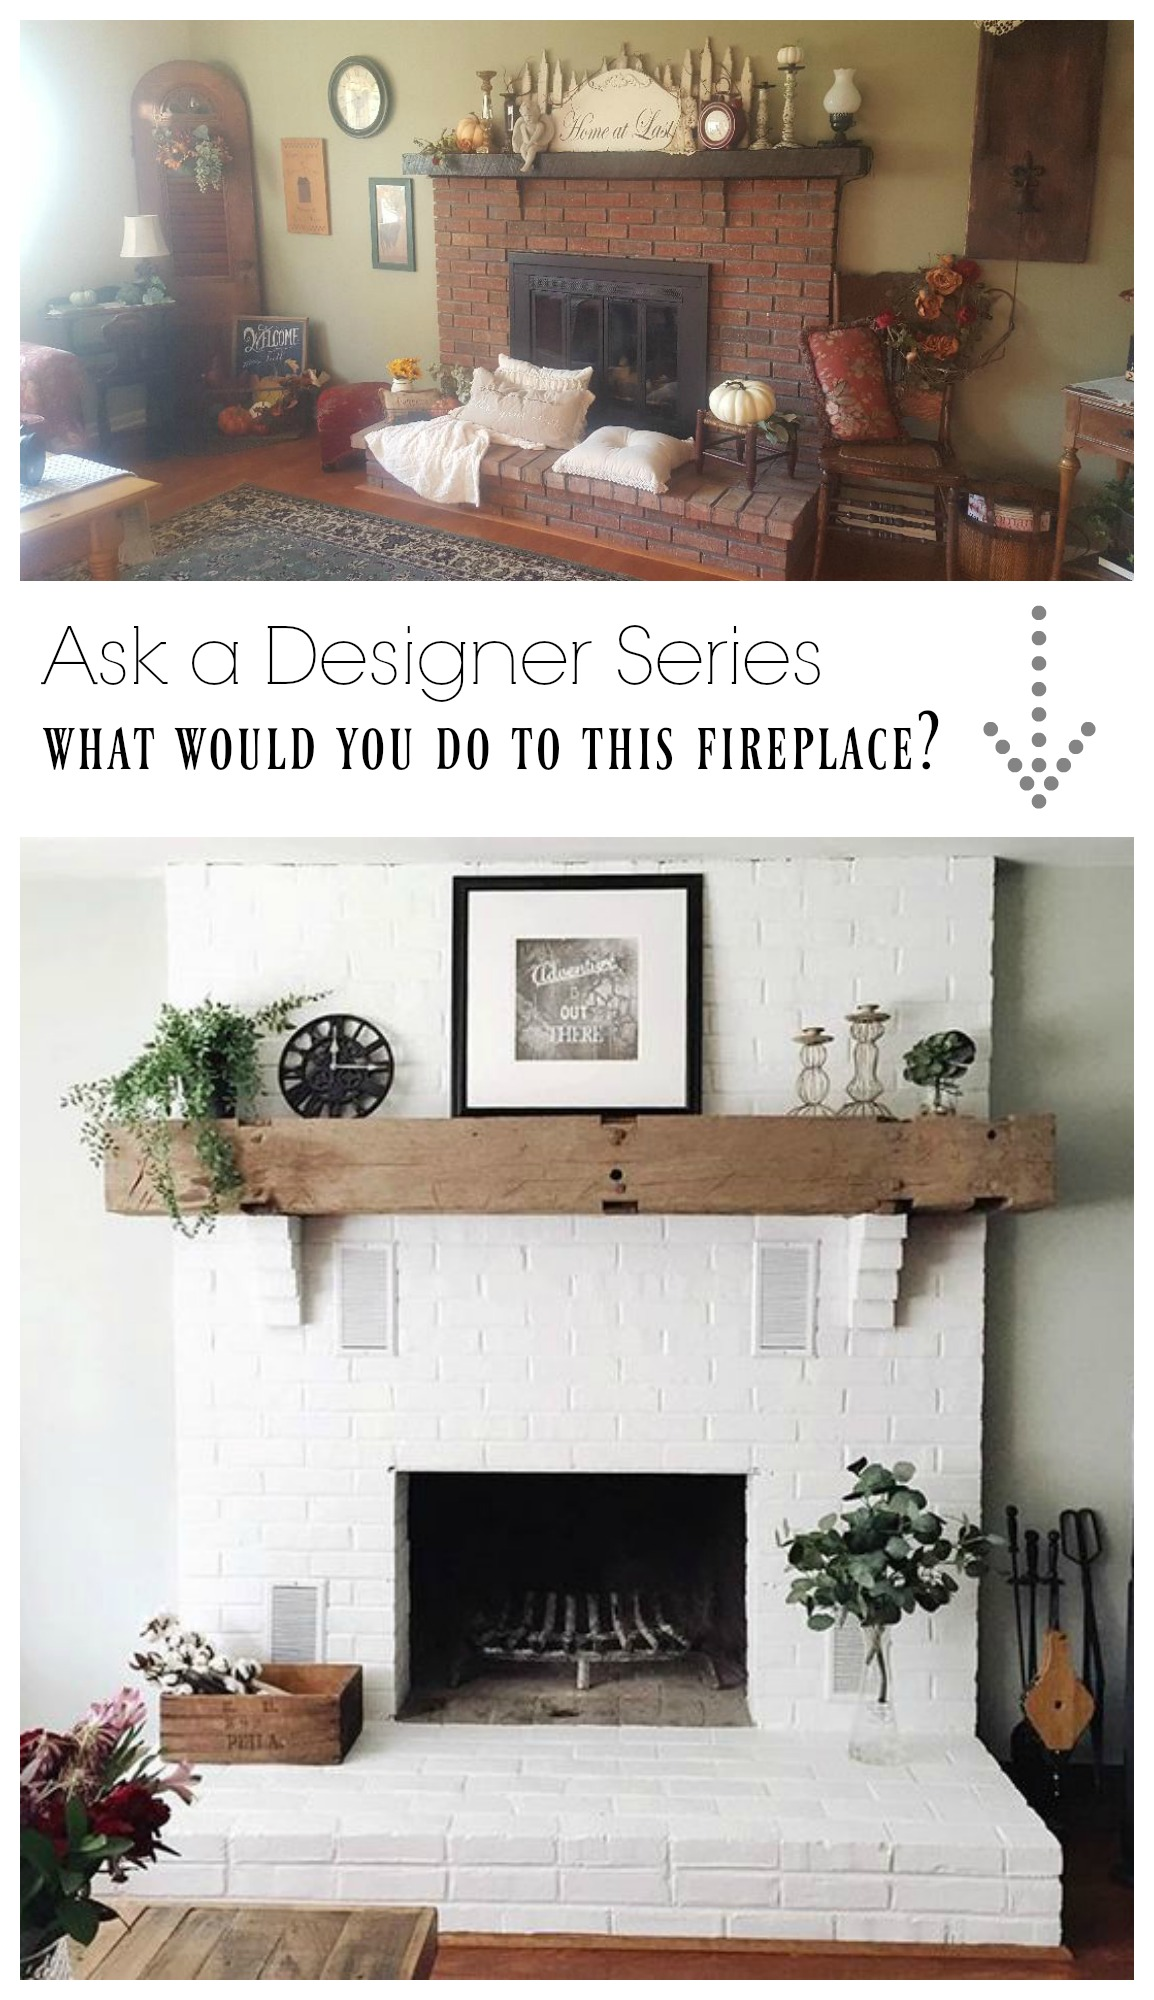 Ask a Designer Series- What would you do to this fireplace?